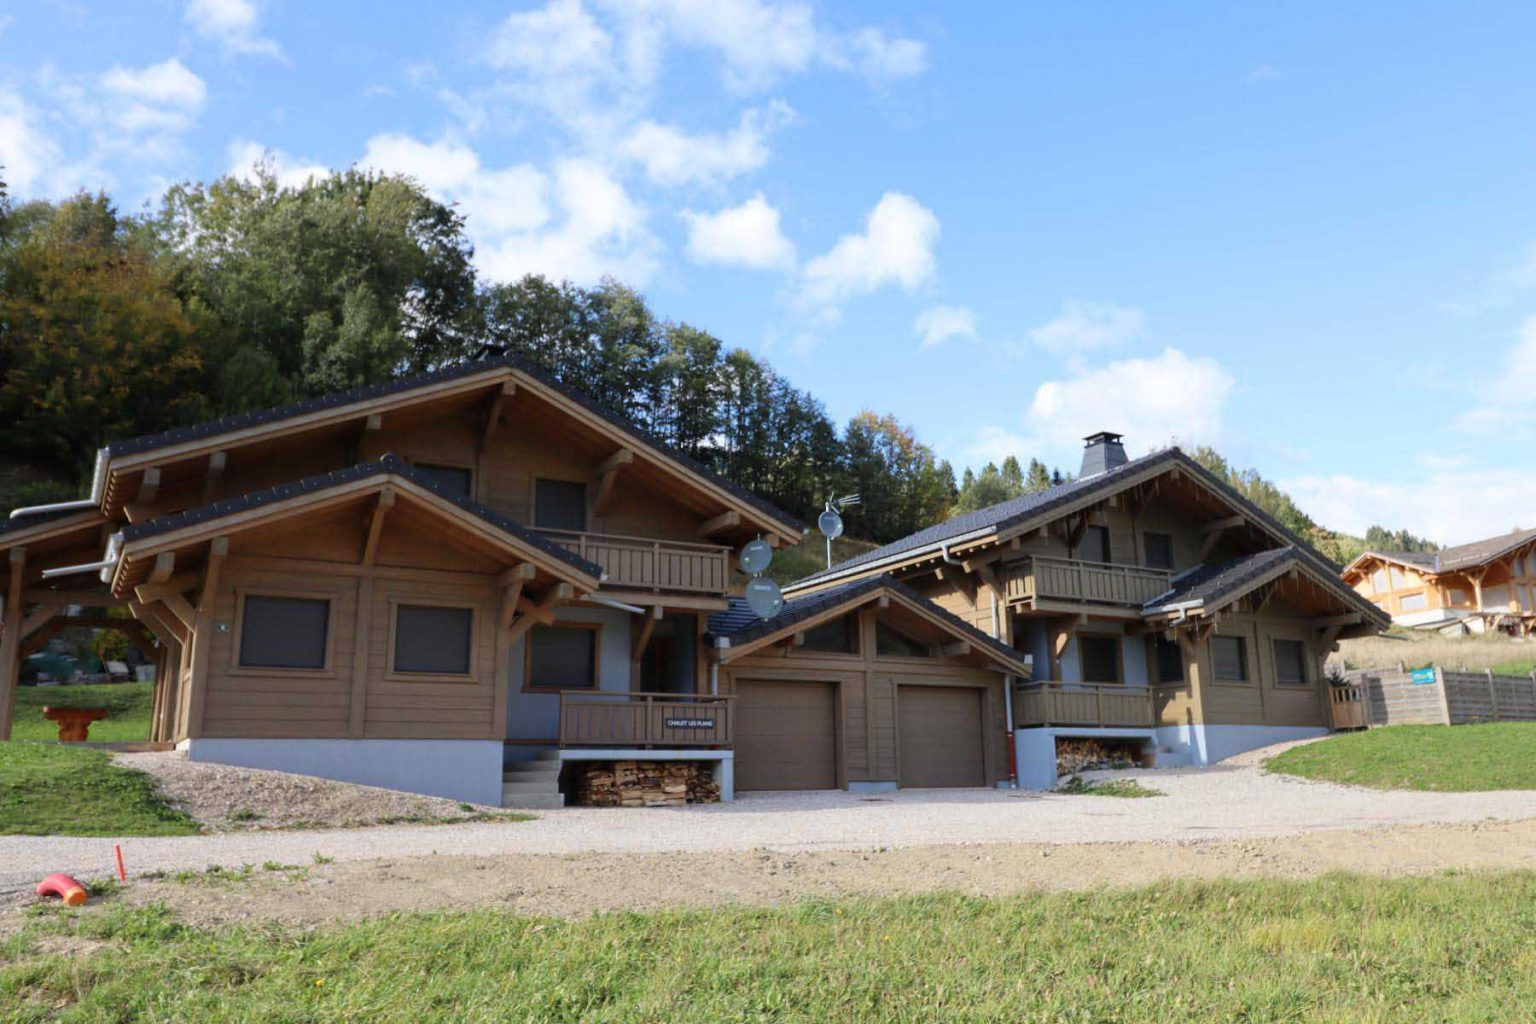 Perrieres chalet 758 Exterior